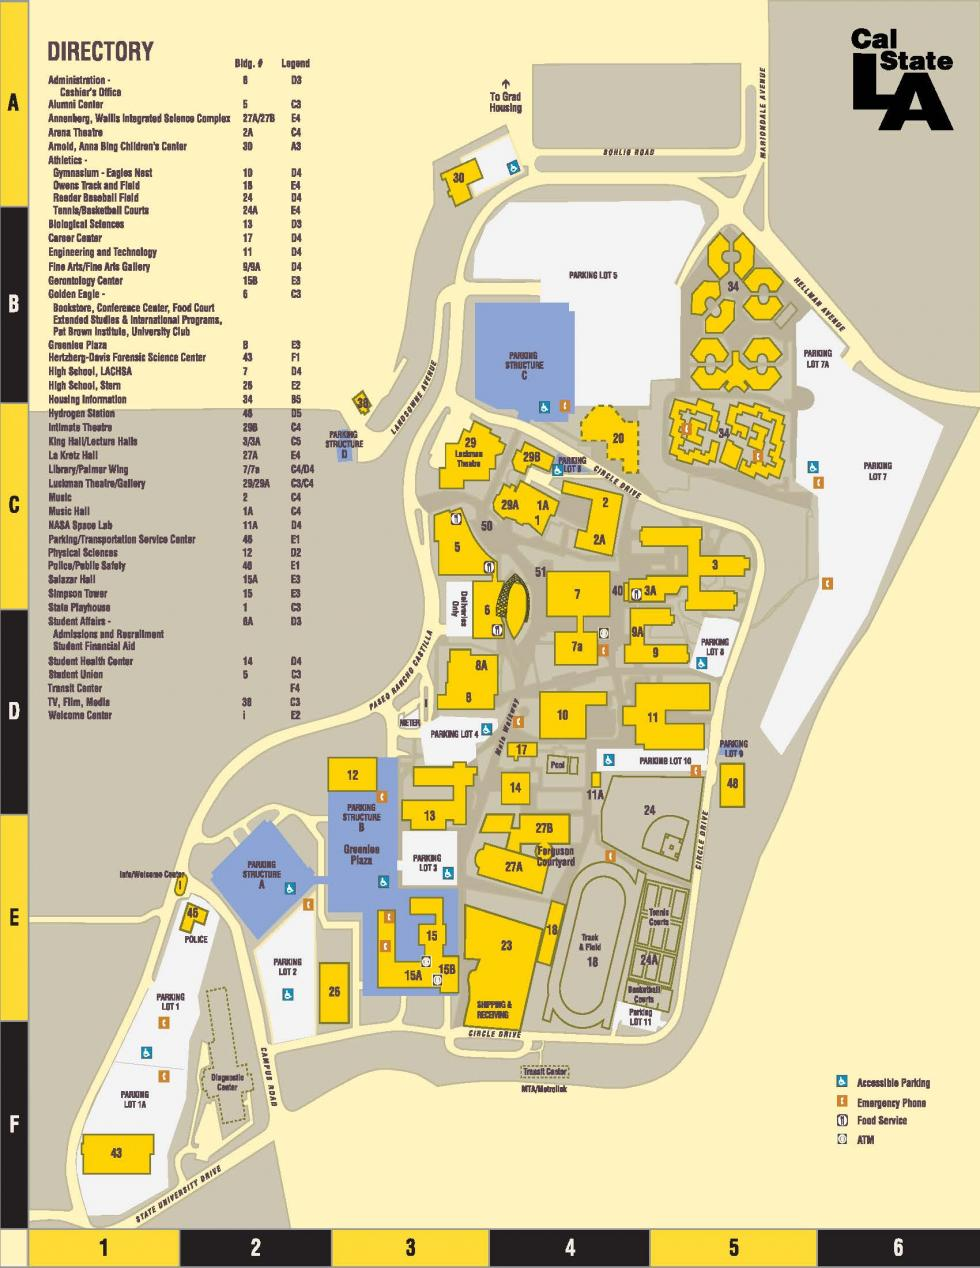 Parking Directions Campus Map Cal State La